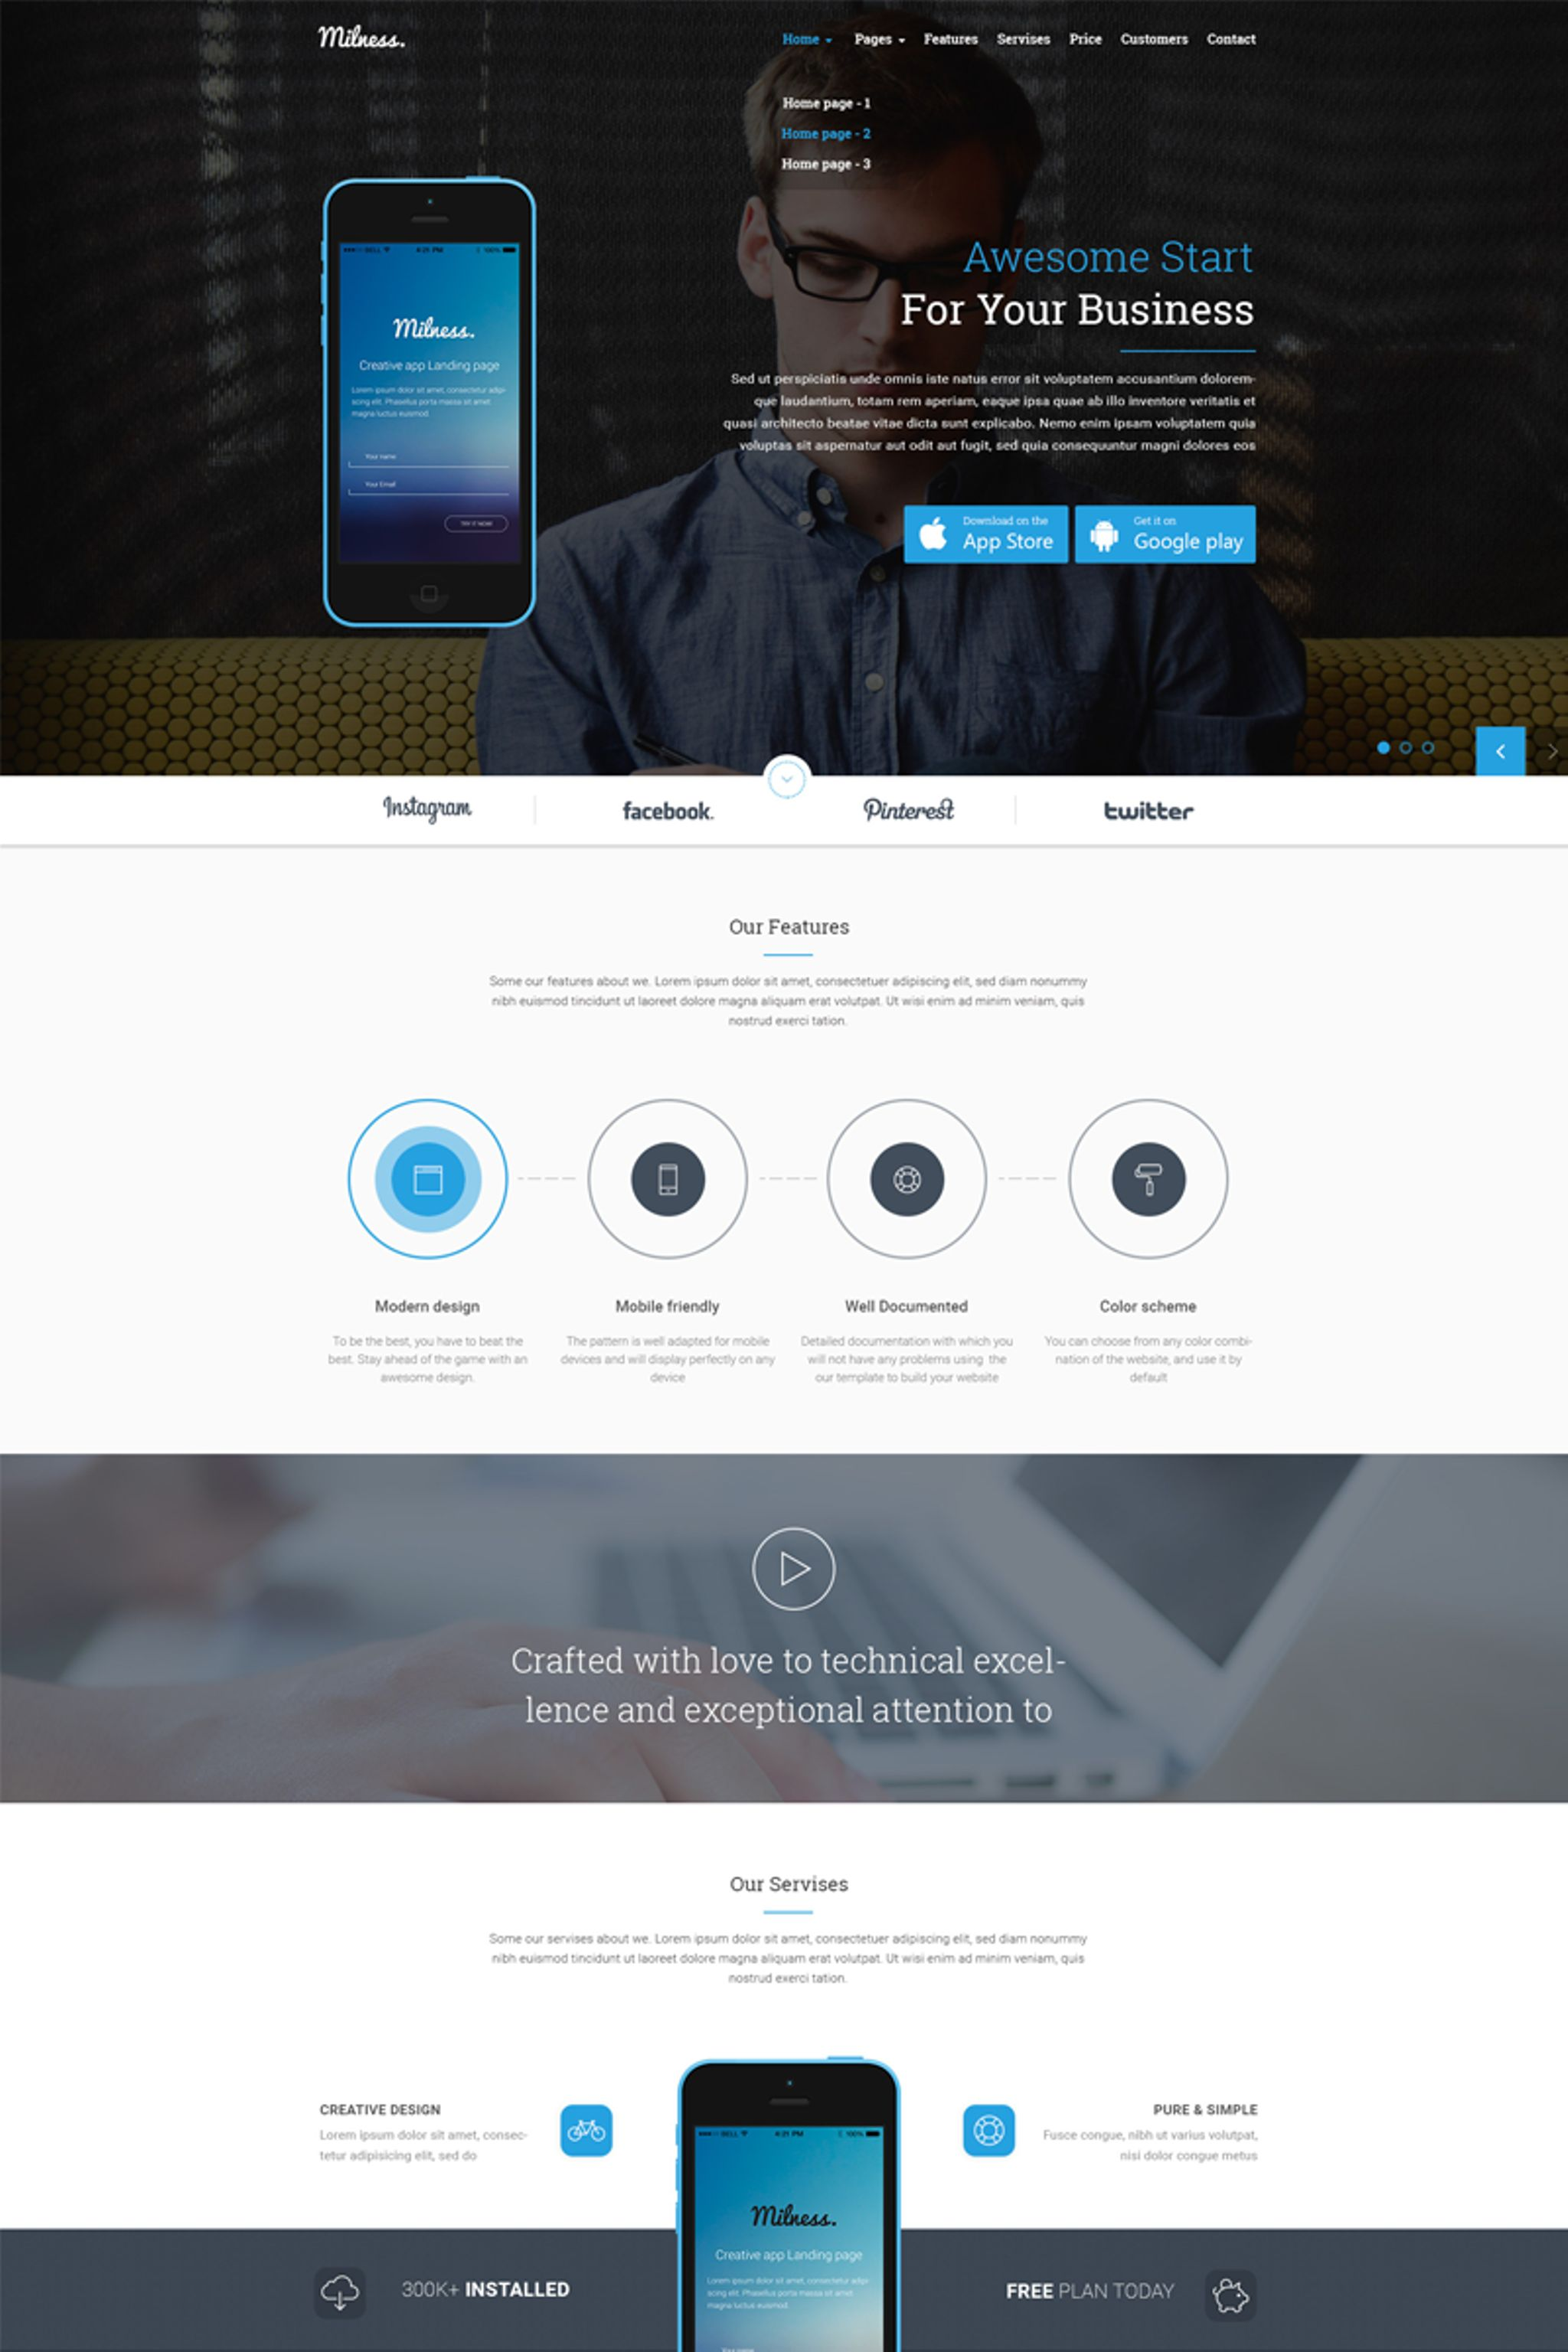 Milness - Showcase Mobile App Website Template